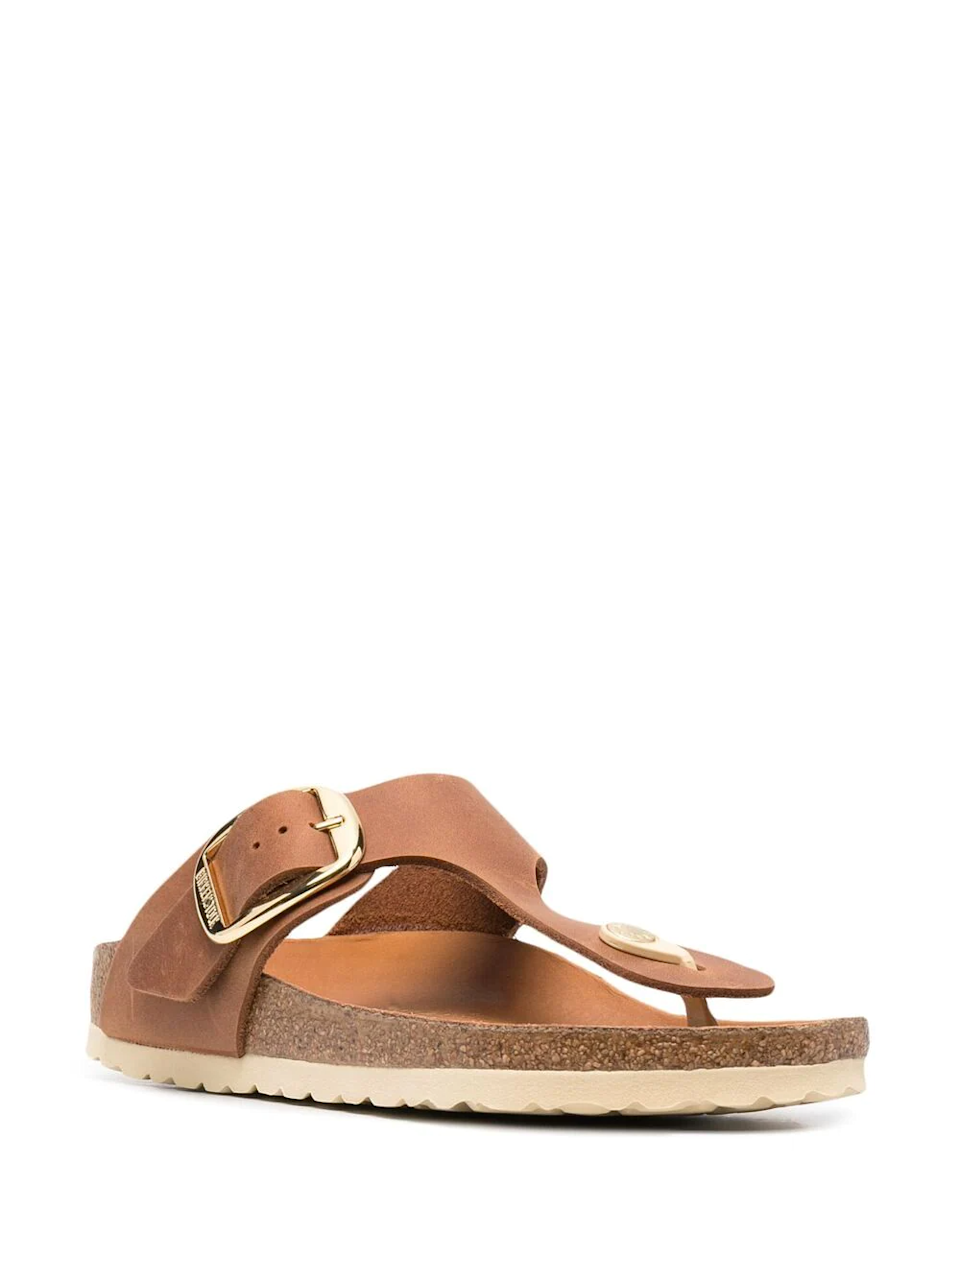 """<h2>Birkenstock Sandals </h2><br>She's been a fan of the heritage comfort brand for years and wore Birks all throughout your childhood — well before they were embraced by the fashion crowd. <br><br><strong>Birkenstock</strong> Gizeh T-Bar Sandals, $, available at <a href=""""https://go.skimresources.com/?id=30283X879131&url=https%3A%2F%2Fwww.farfetch.com%2Fshopping%2Fwomen%2Fbirkenstock-gizeh-t-bar-flip-flops-item-16524369.aspx"""" rel=""""nofollow noopener"""" target=""""_blank"""" data-ylk=""""slk:Farfetch"""" class=""""link rapid-noclick-resp"""">Farfetch</a>"""